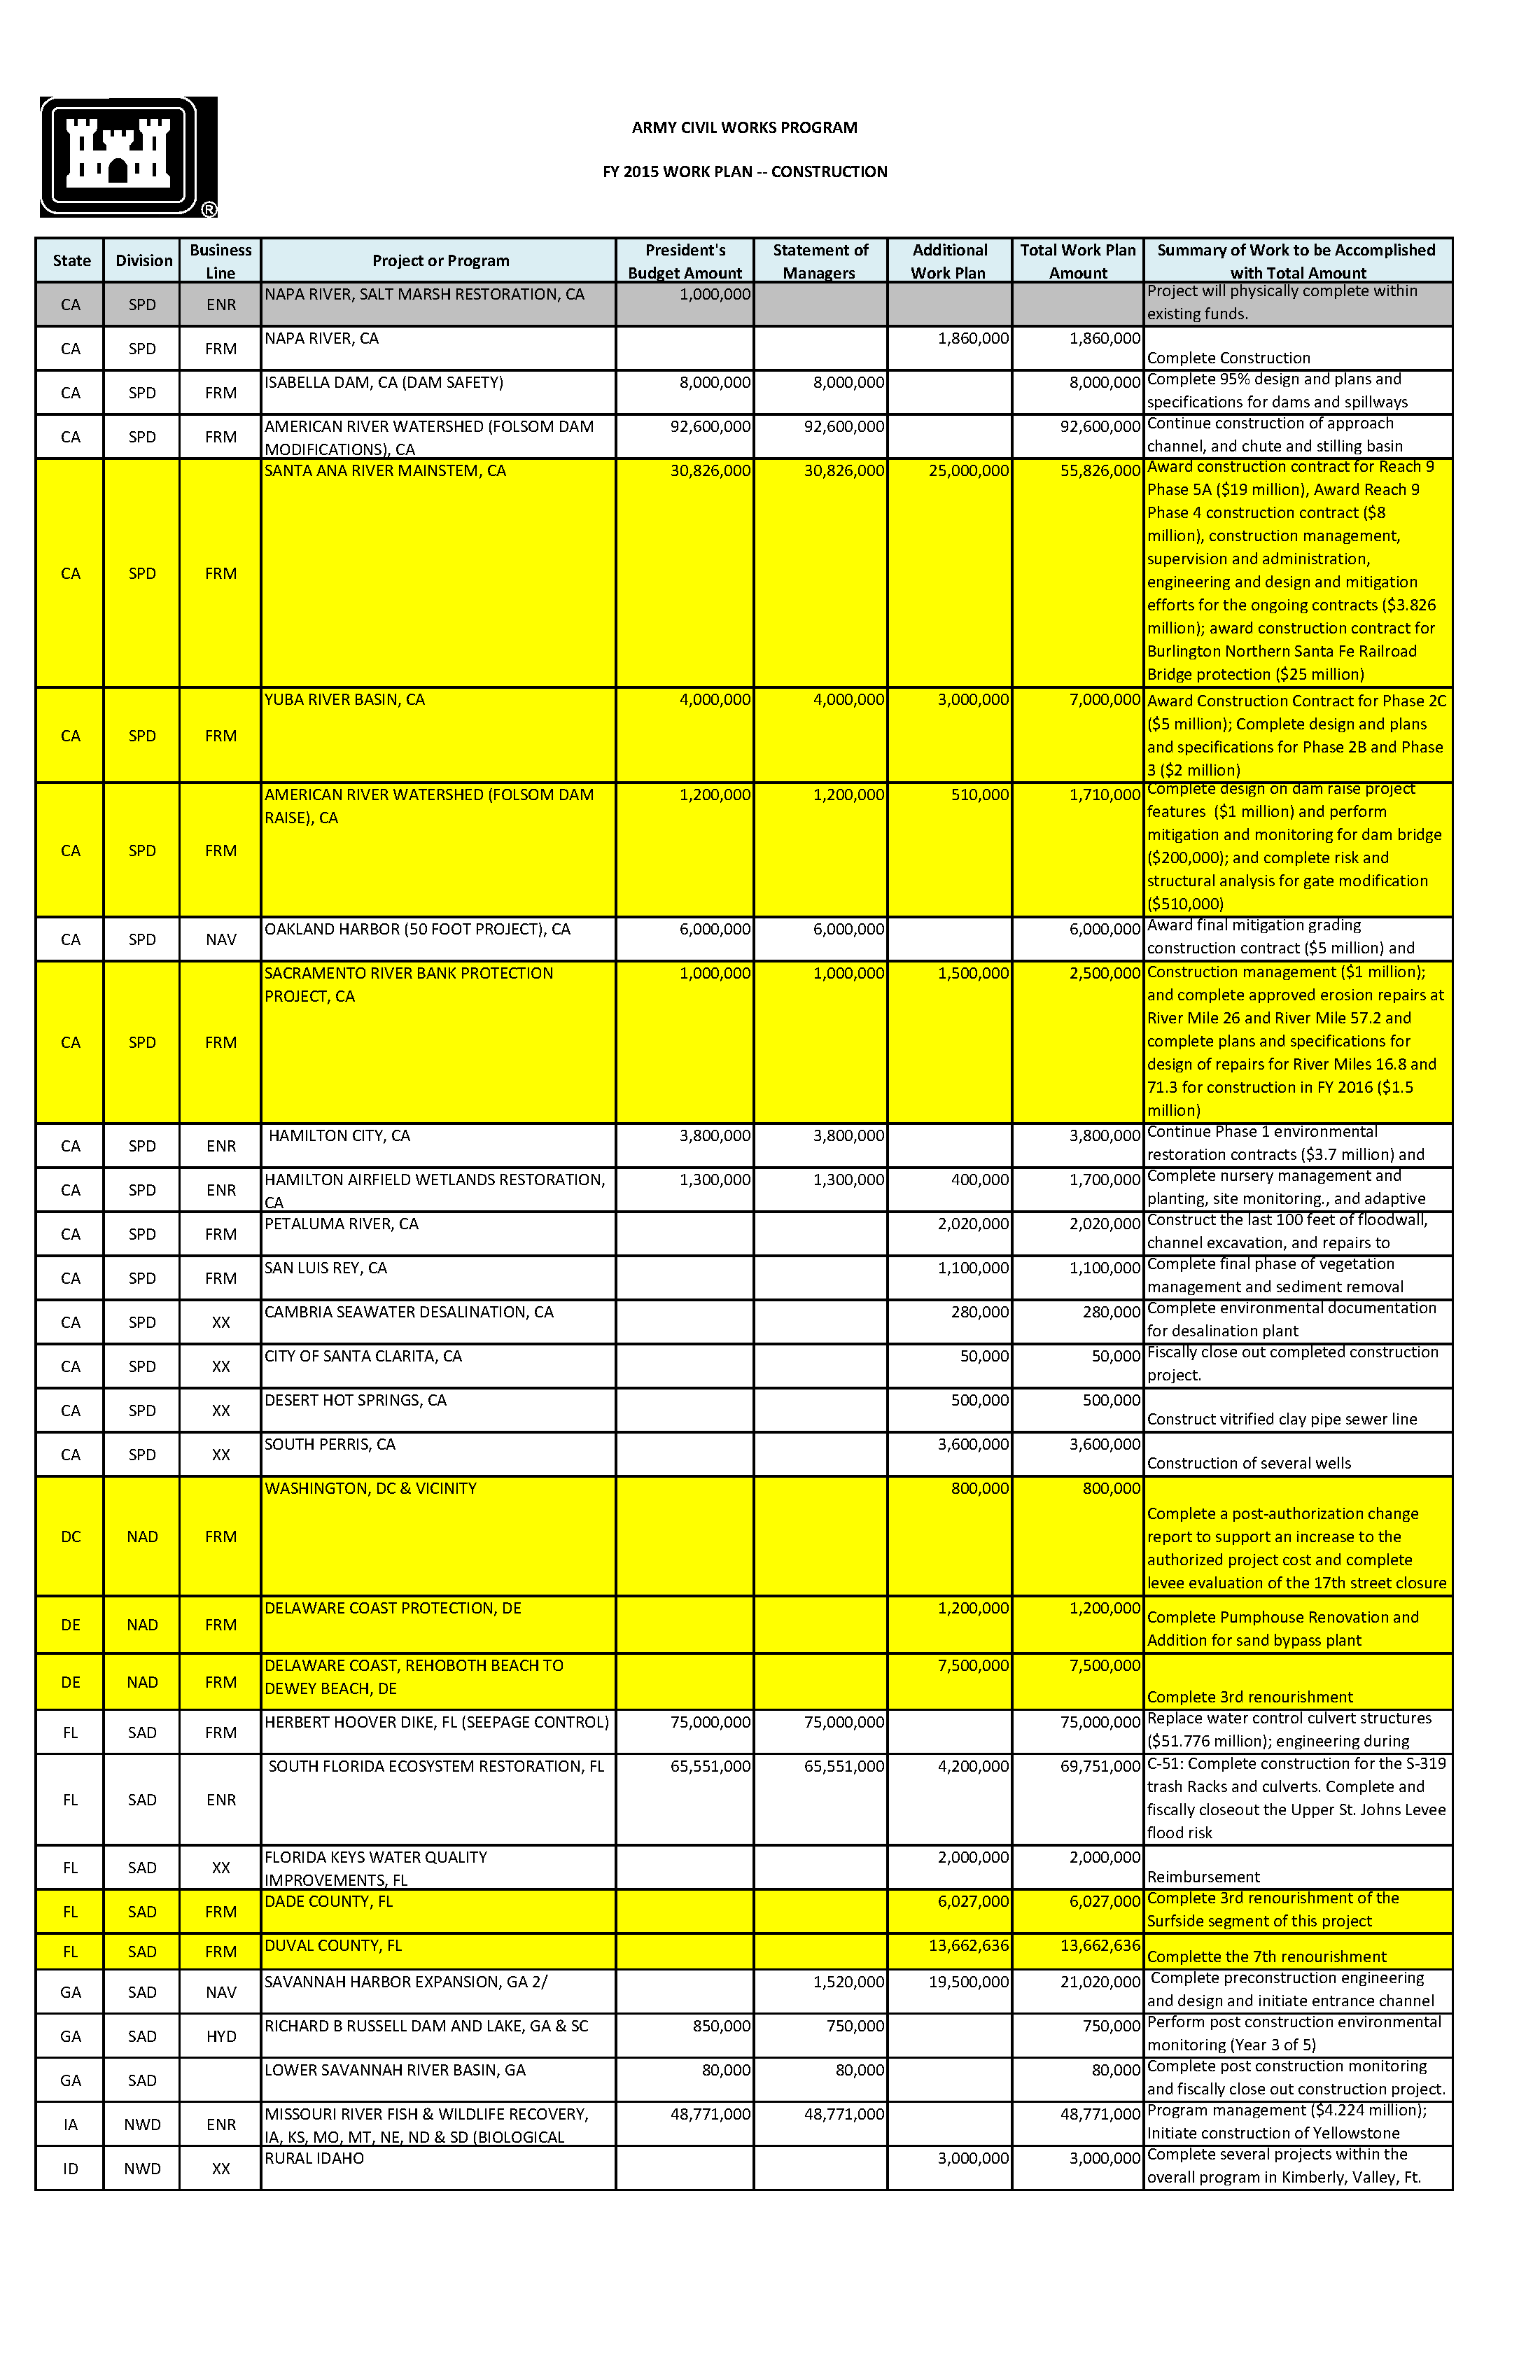 Army Civil Works Program, FY 2015 work plan - construction - About